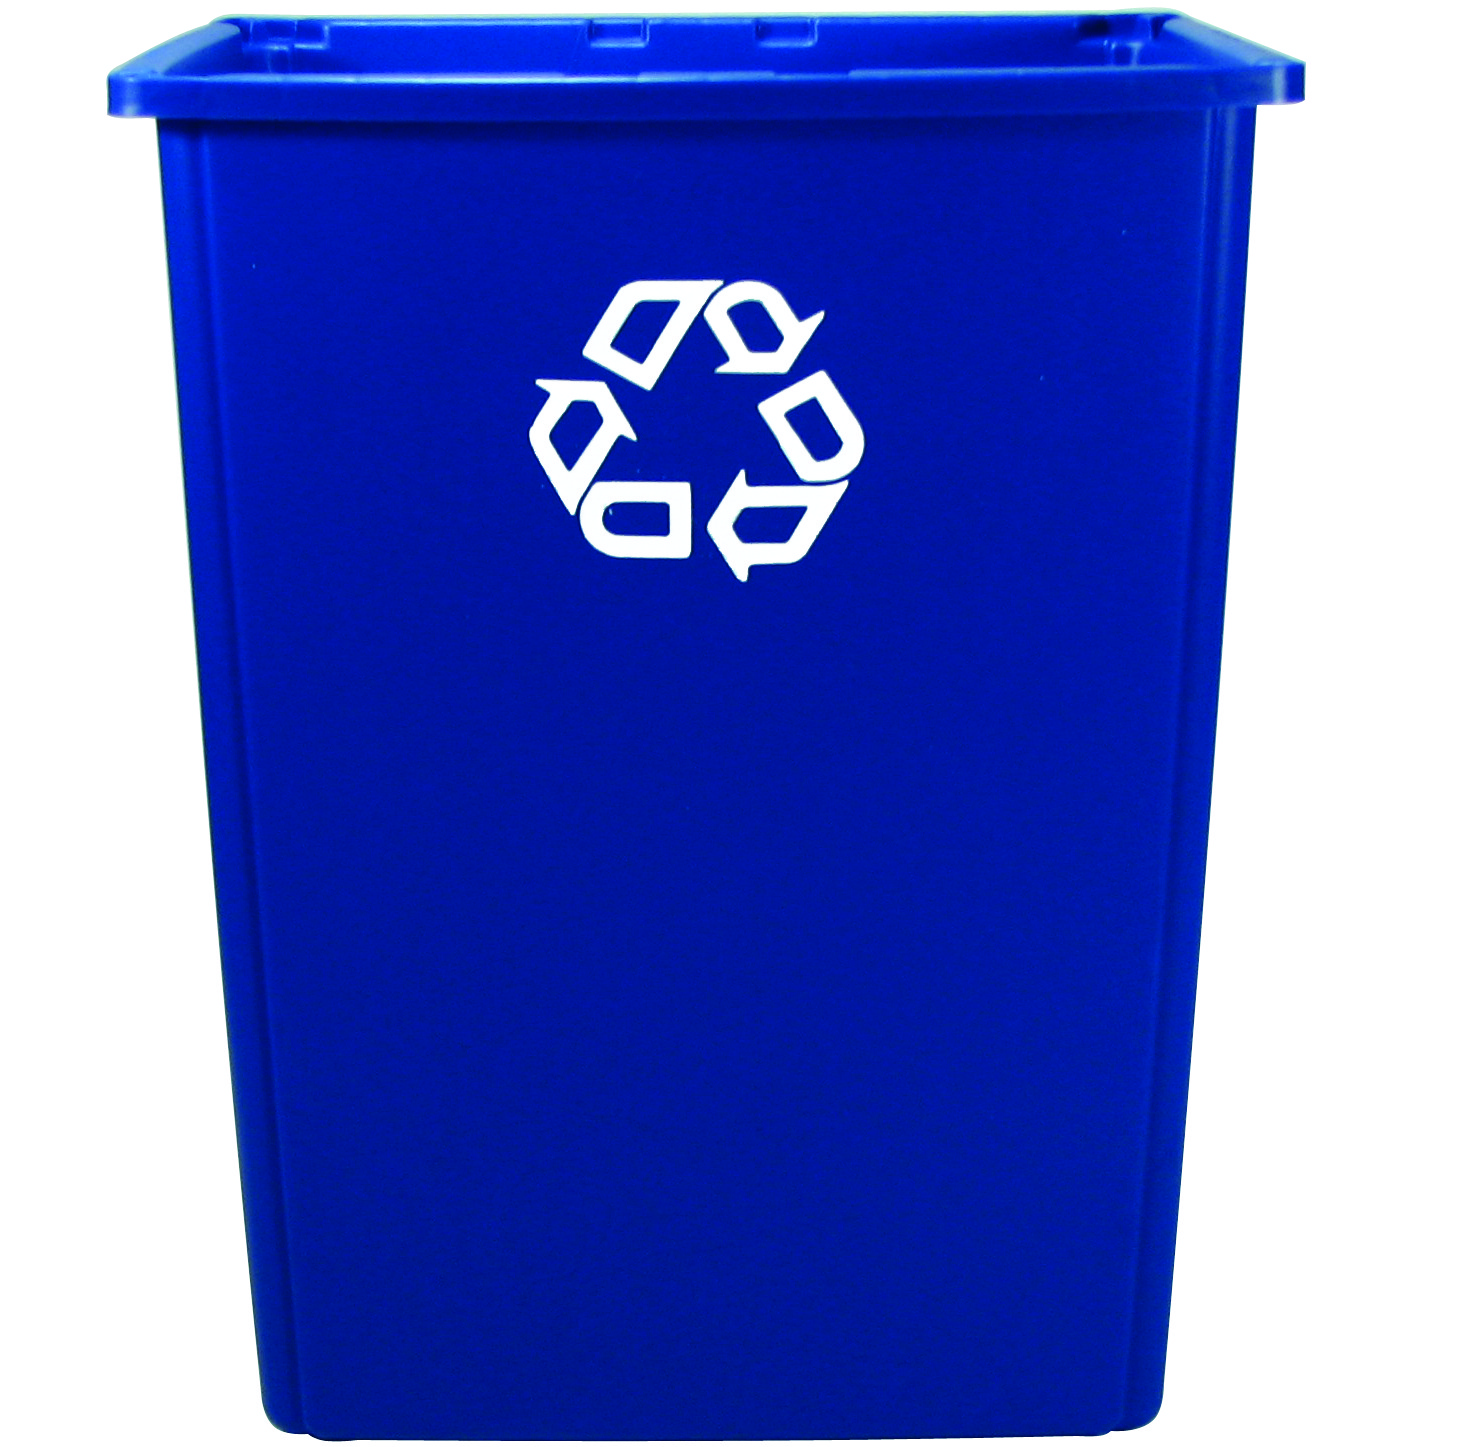 56-Gallon Rubbermaid Glutton Rectangular Recycling Container, Blue ...